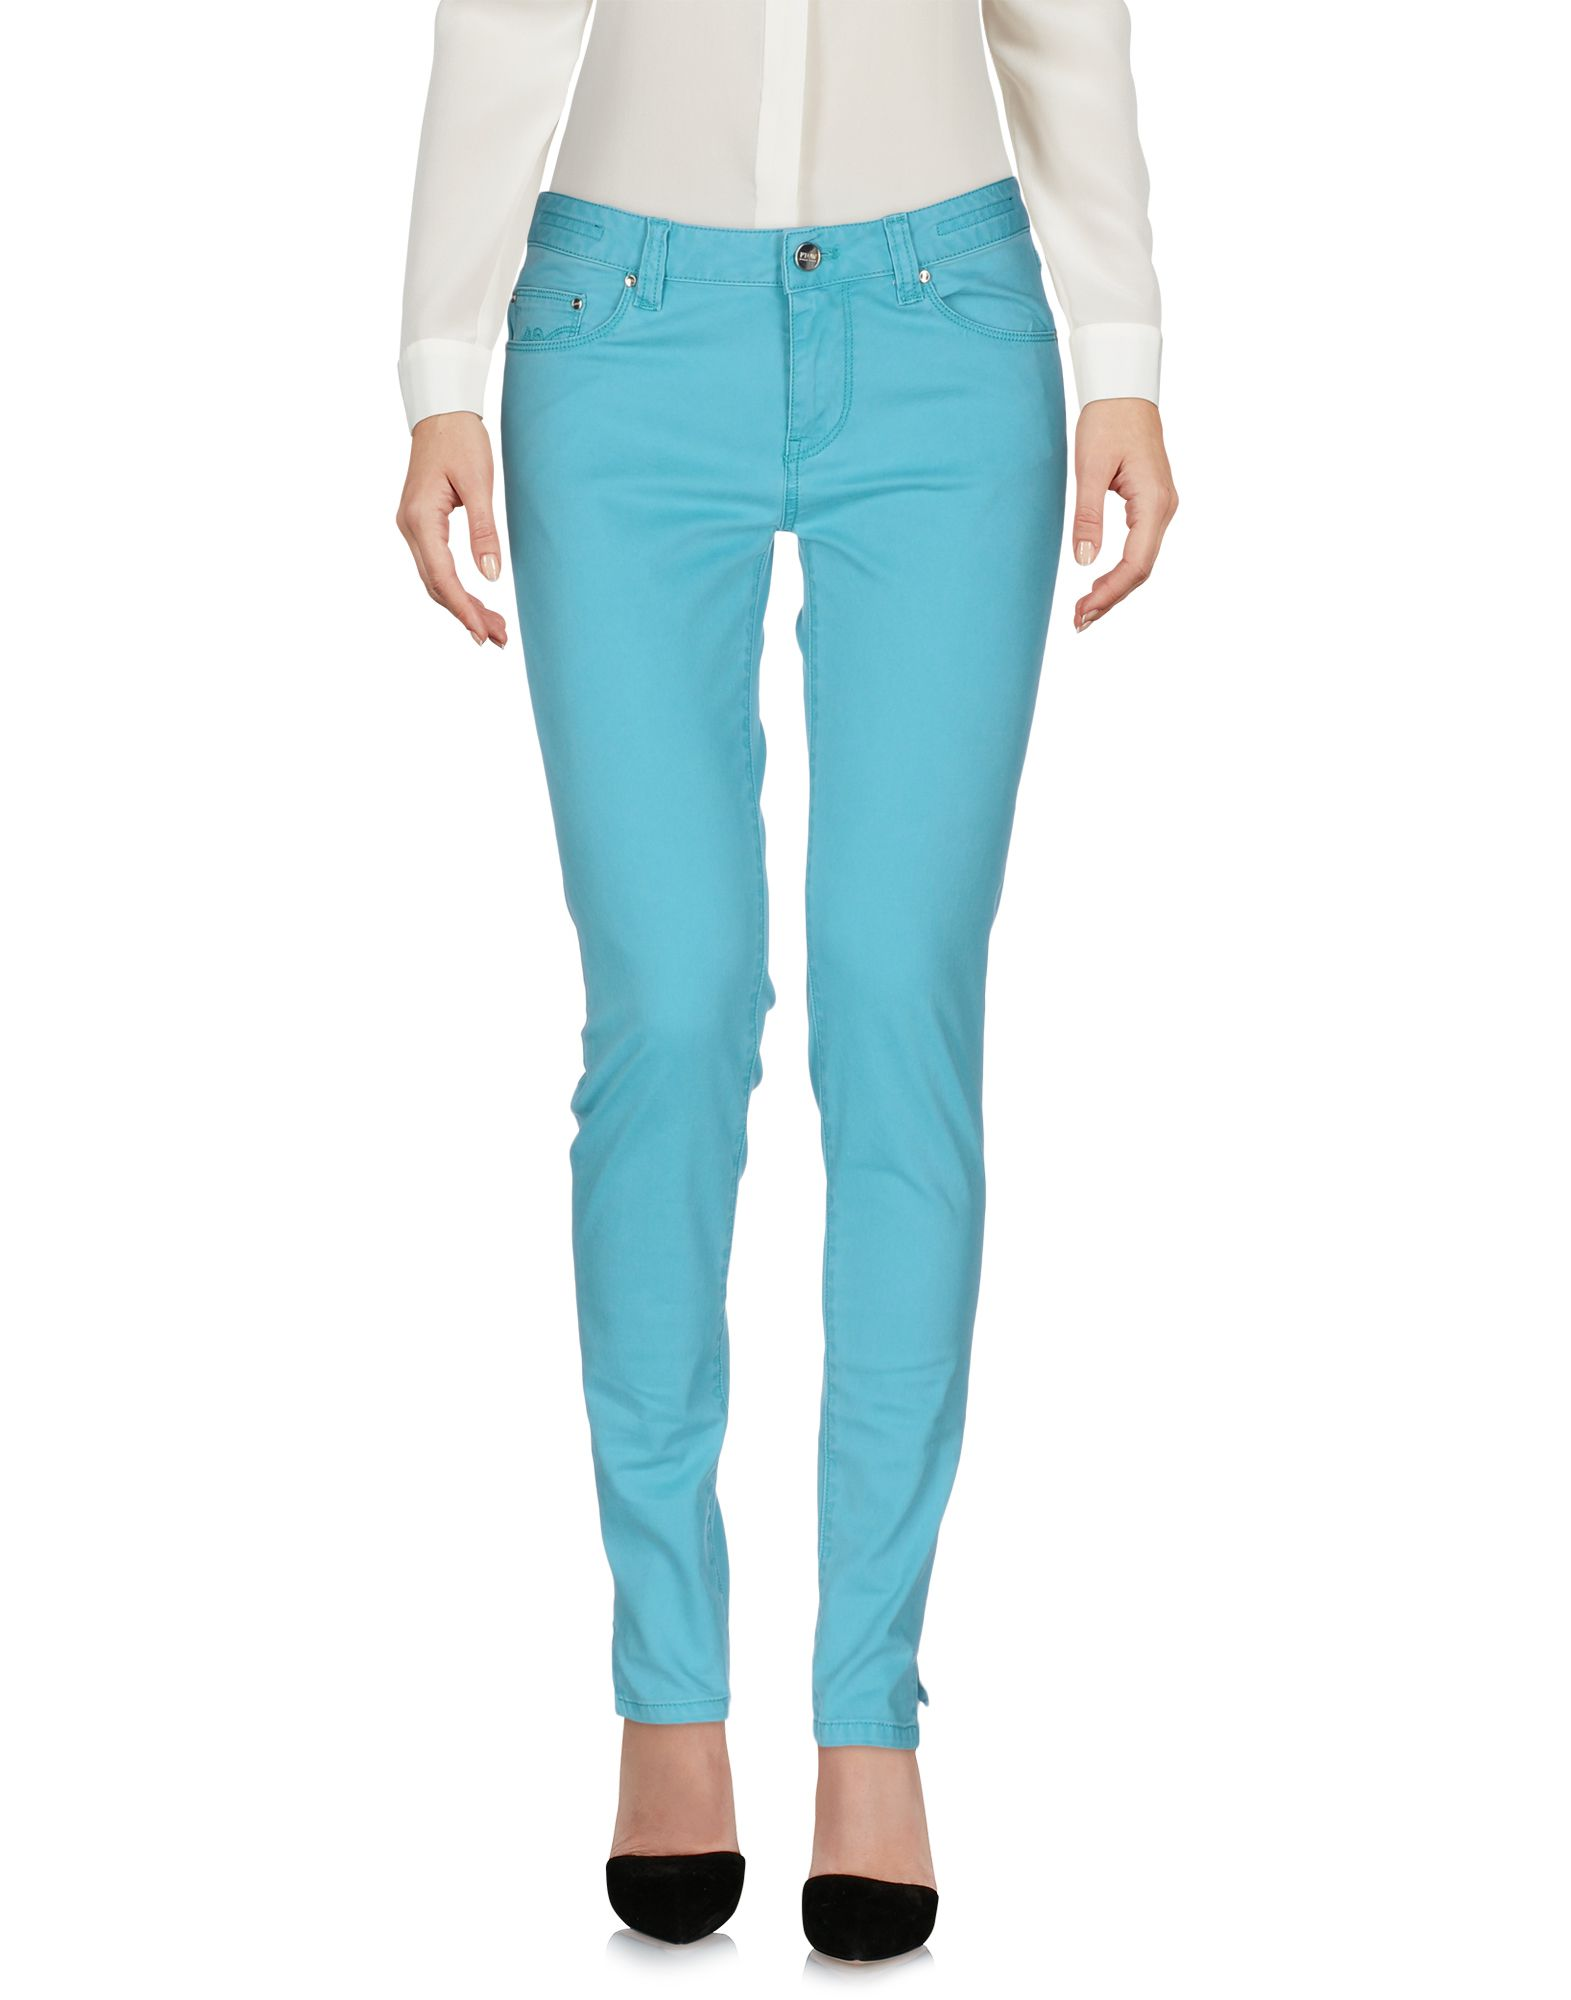 PT0W Casual Pants in Turquoise